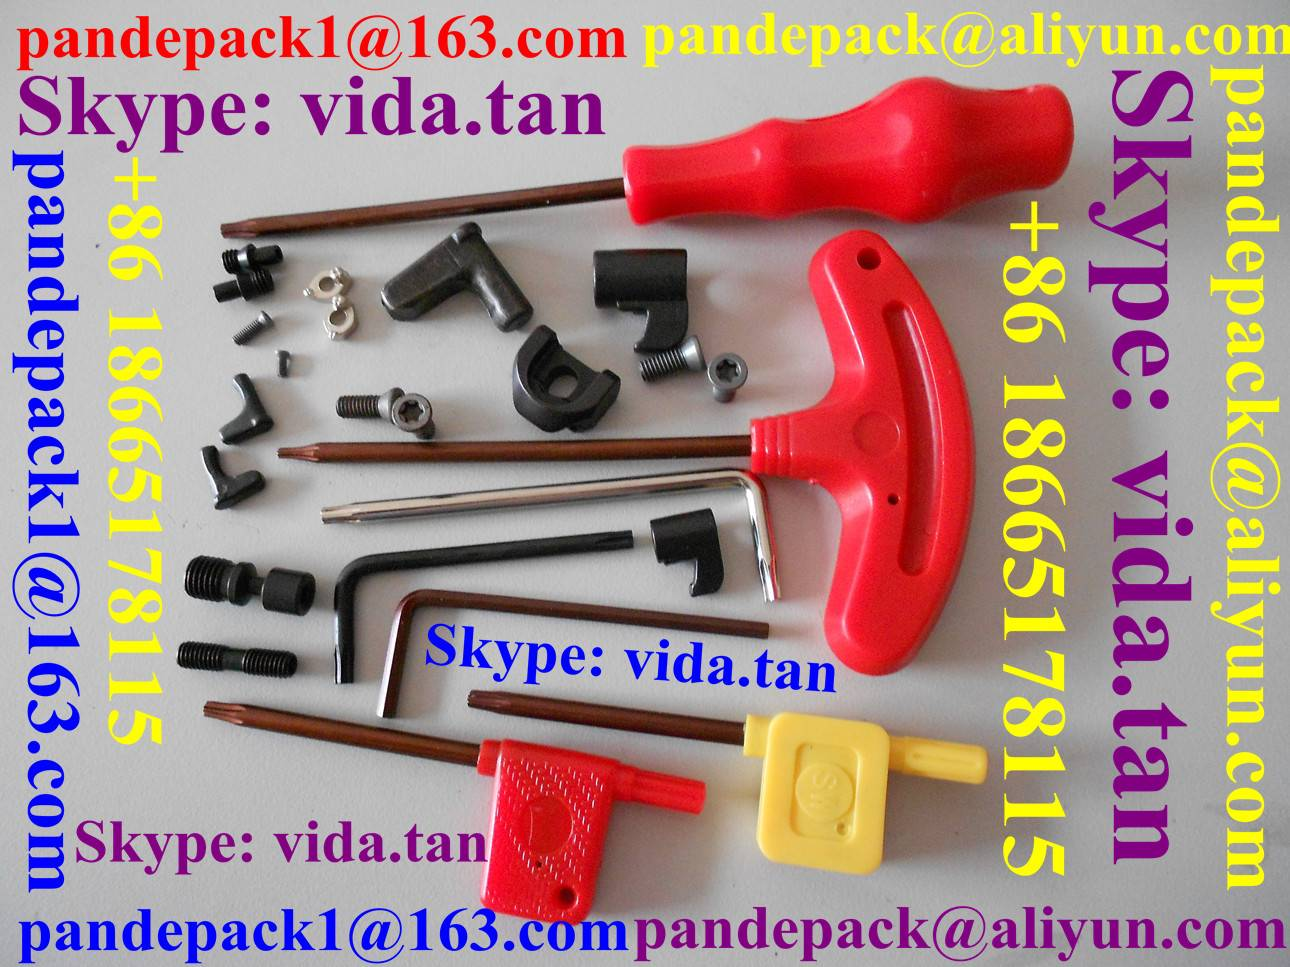 Tool Parts/Accessories/Alloy Shim/Clamp/Lever/Torx Key/Allen Key/Clamp Screw/Shim Screw/Torx Screw